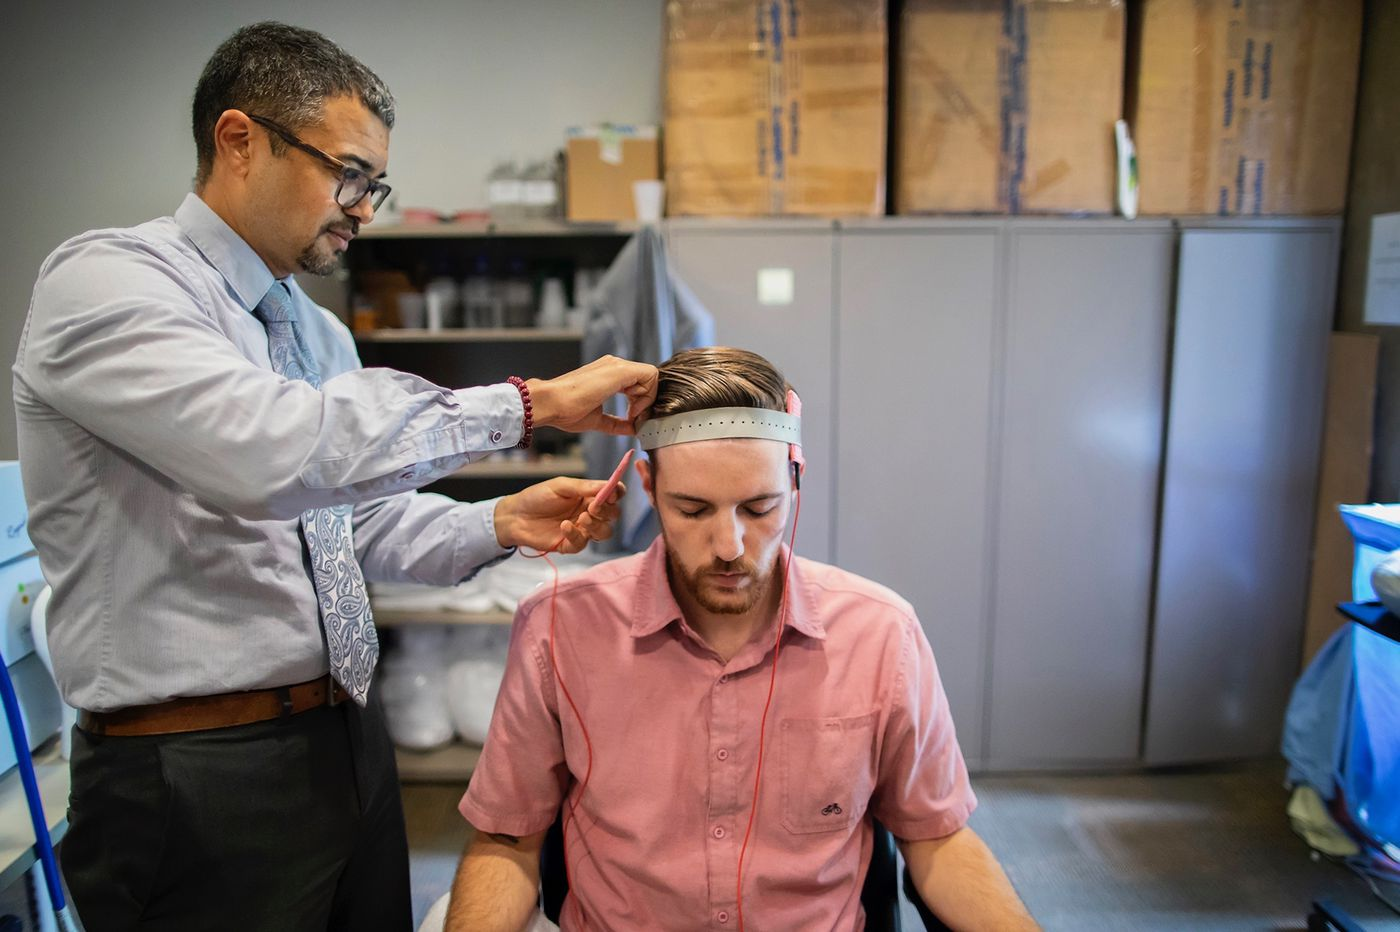 Could a therapy for brain damage also decrease violent impulses?